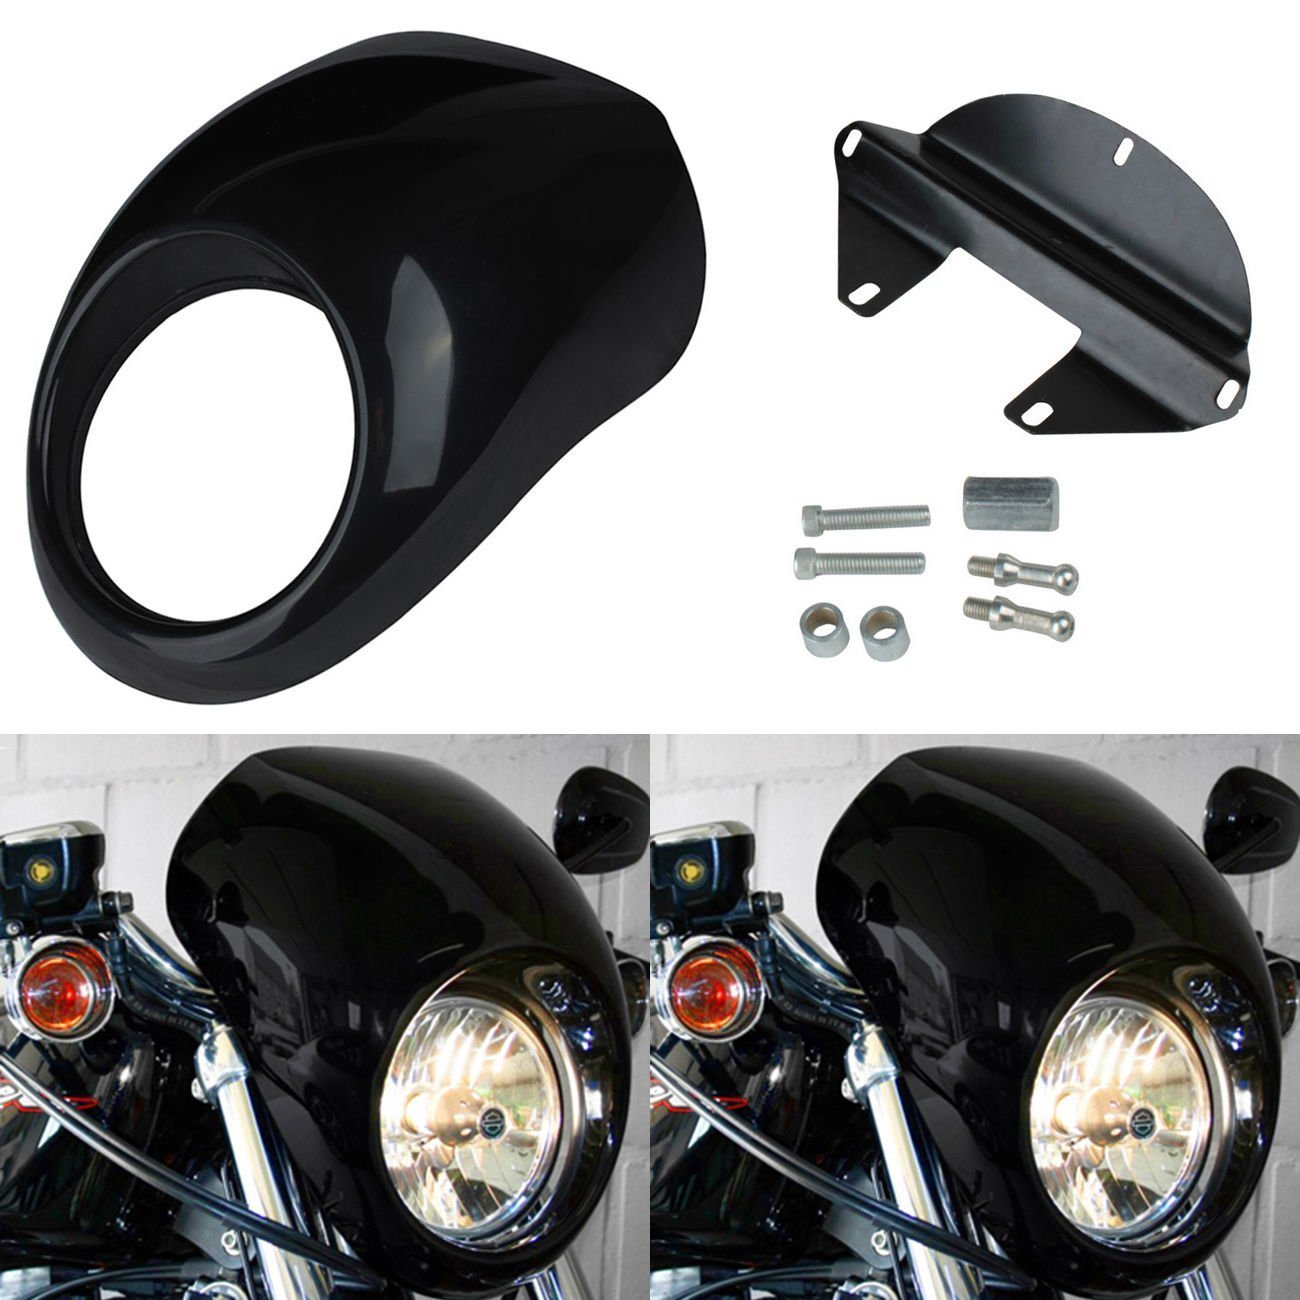 Ambienceo anteriore Cupolino Cowl Mask Trim copertura per Harley Sportster Dyna Glide FX XL